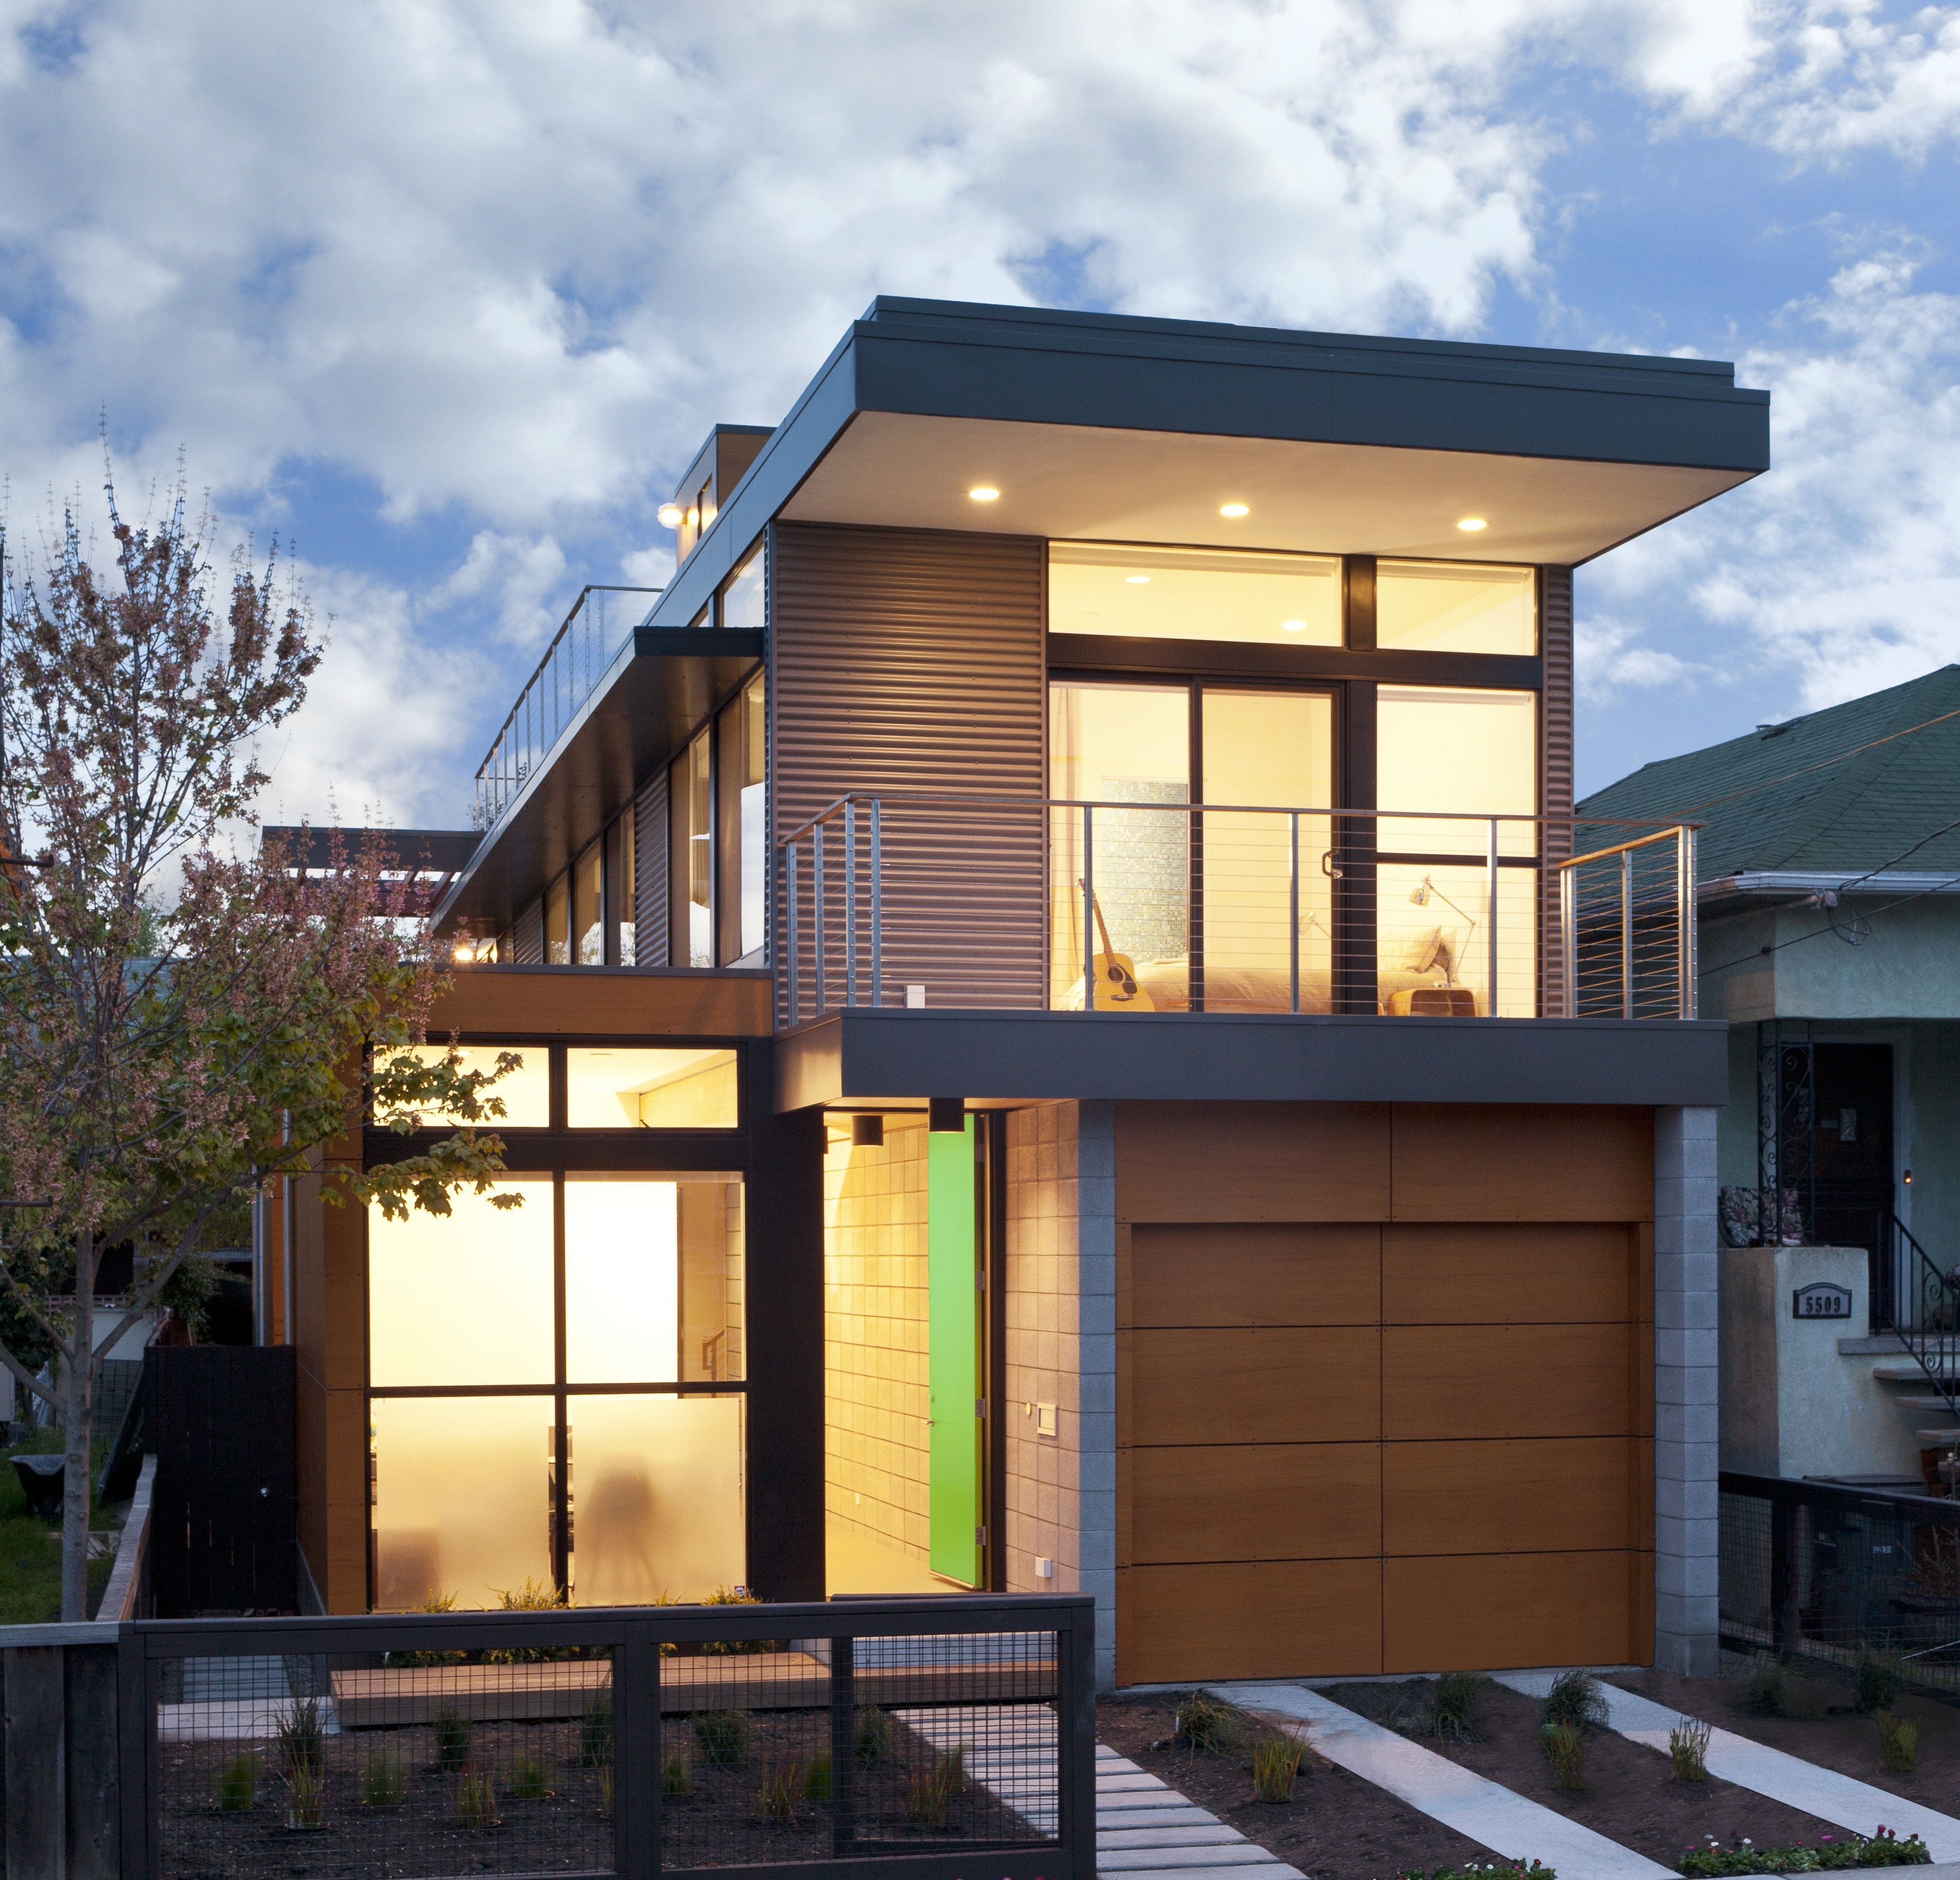 1000+ images about Prefab on Pinterest - ^